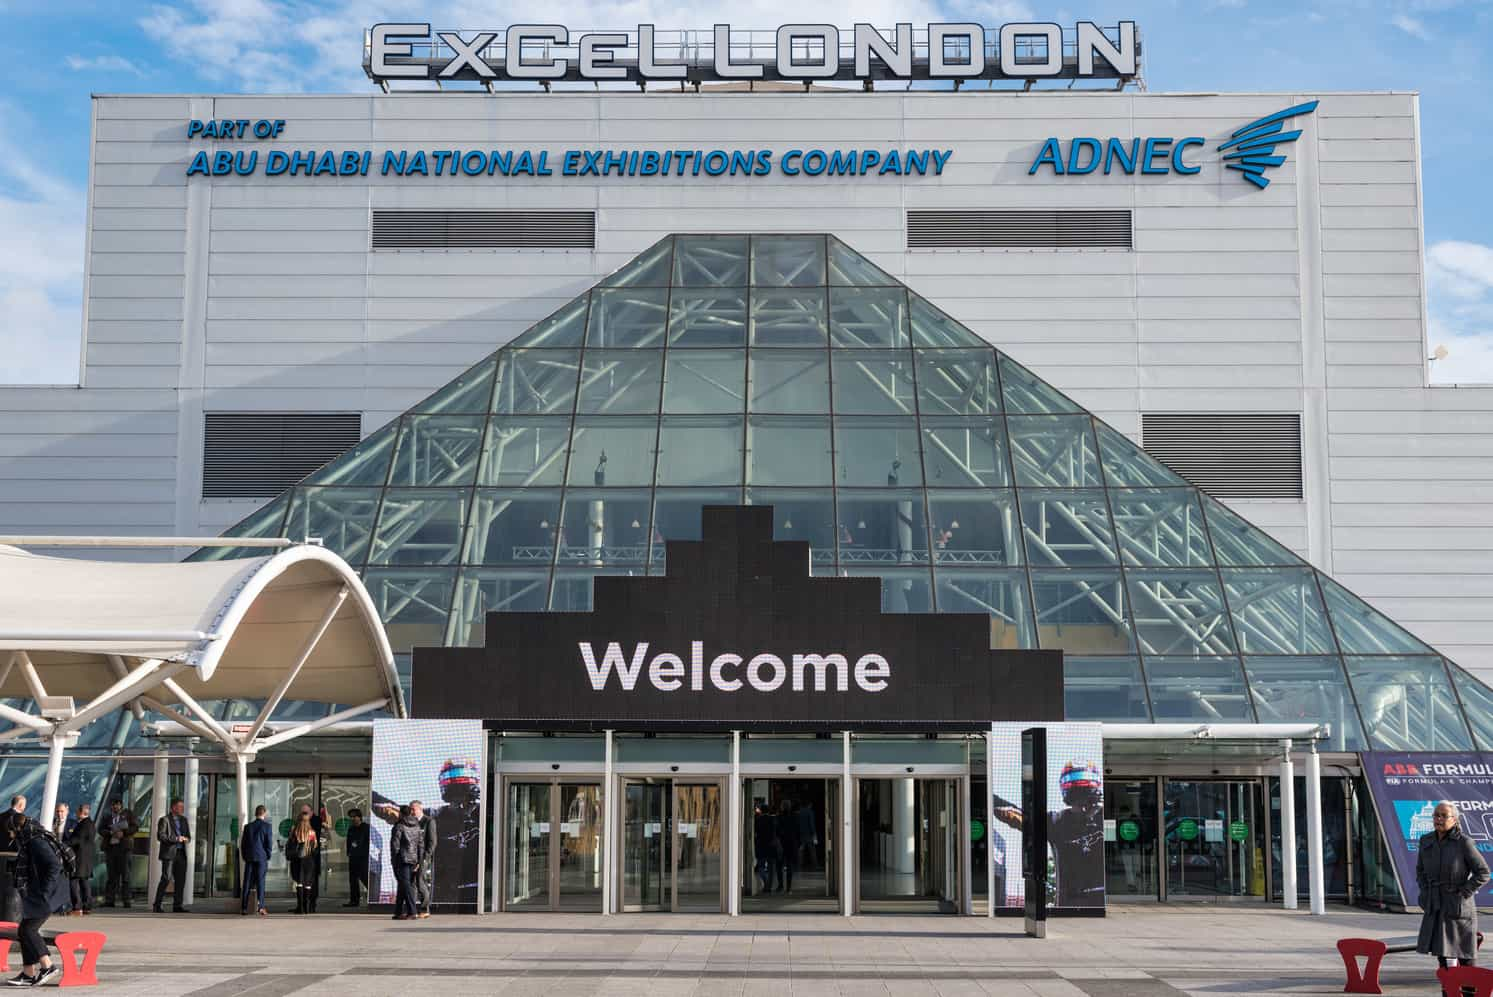 The ExCel in London